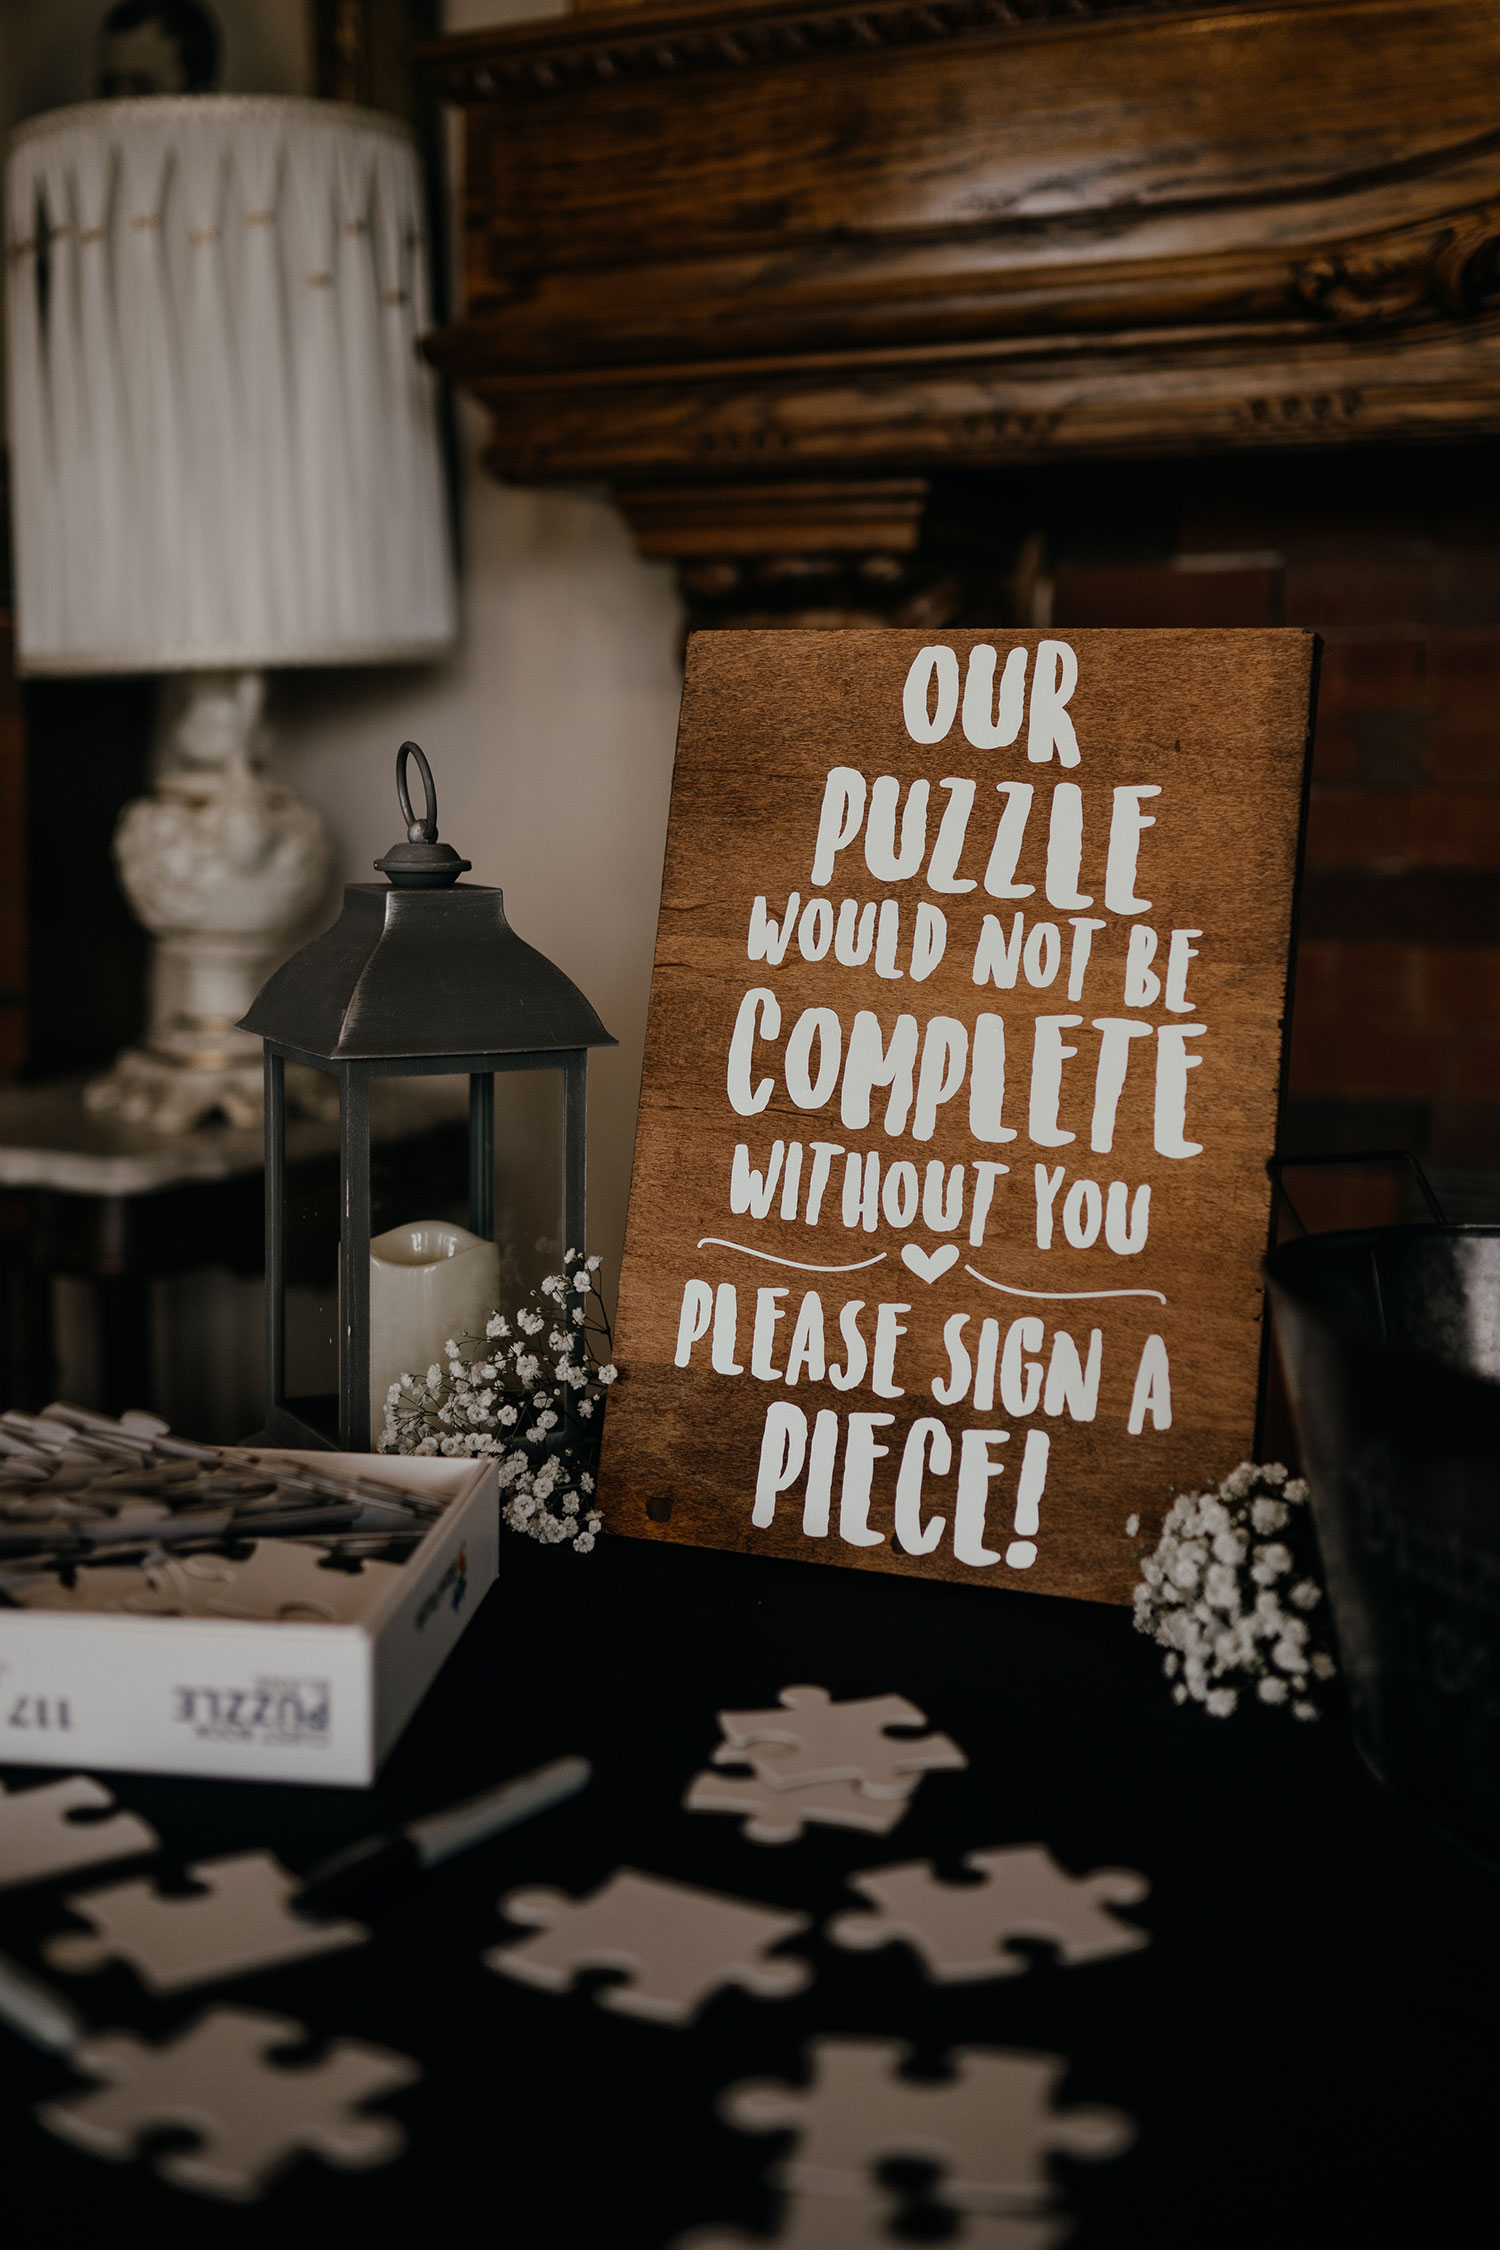 welcome-table-sign-in-puzzle-pieces-decades-event-center-building-desmoines-iowa-raelyn-ramey-photography..jpg